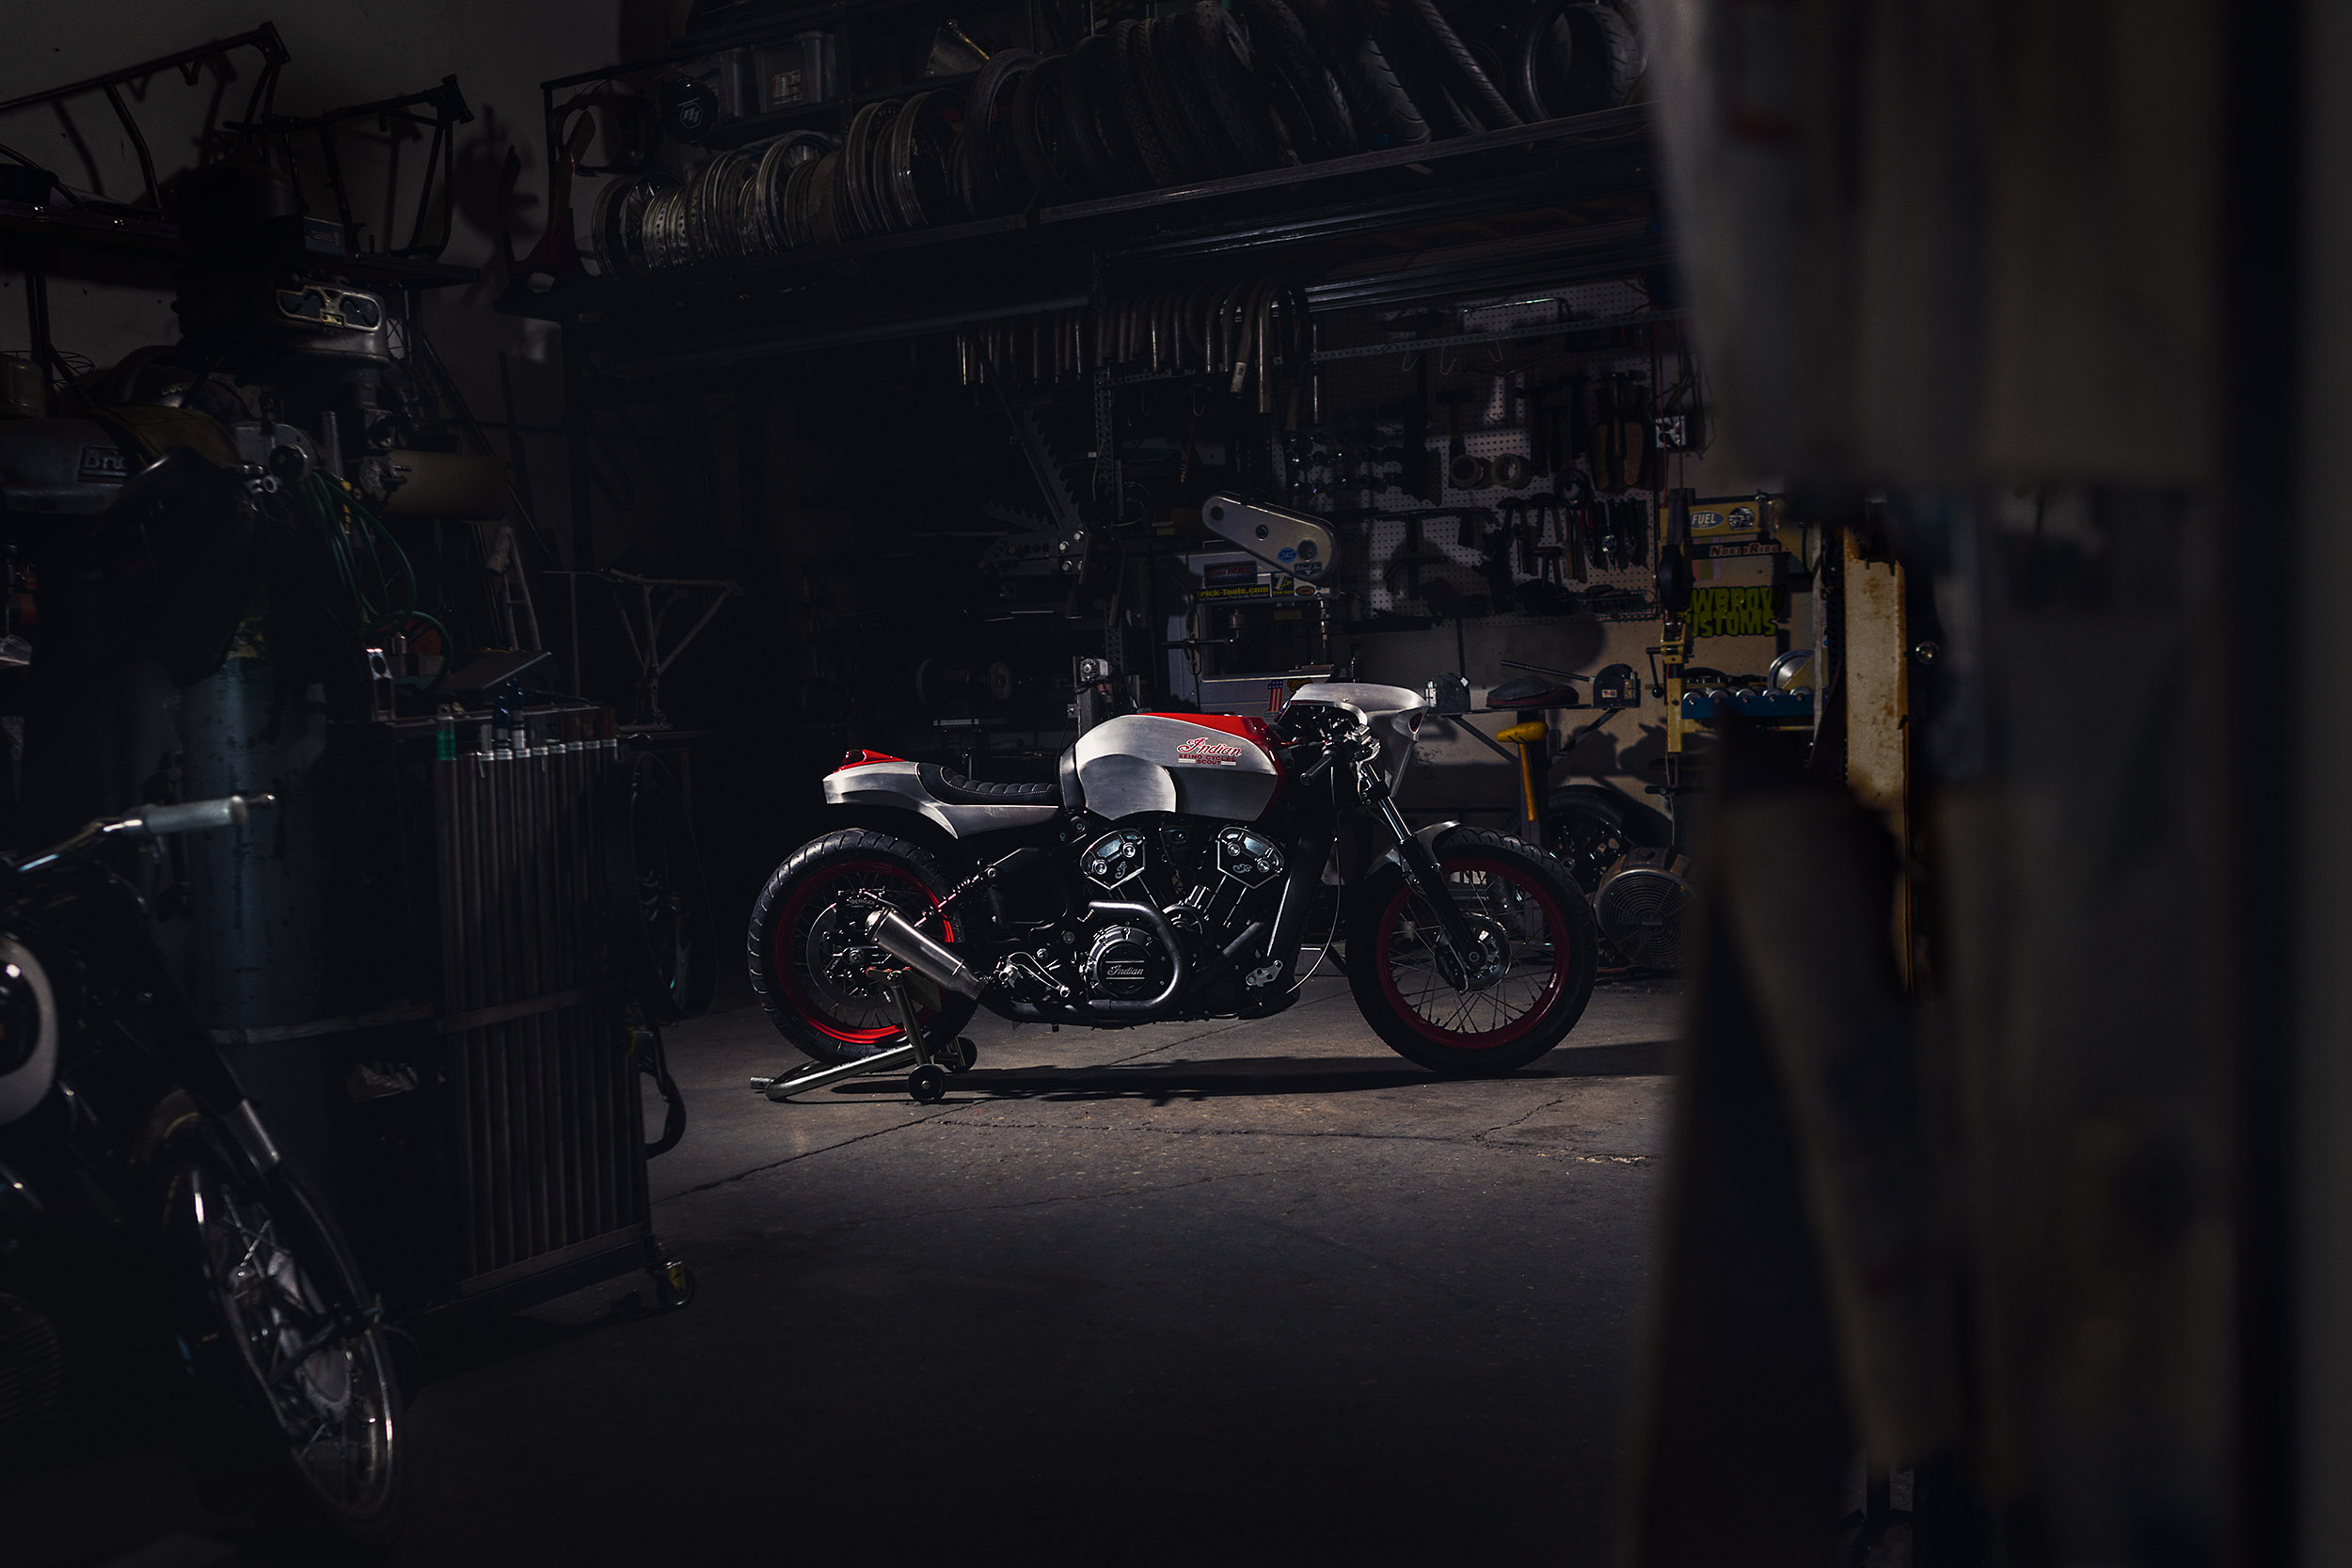 17_0915_Keino_IndianScout_HotBike_130A.jpg